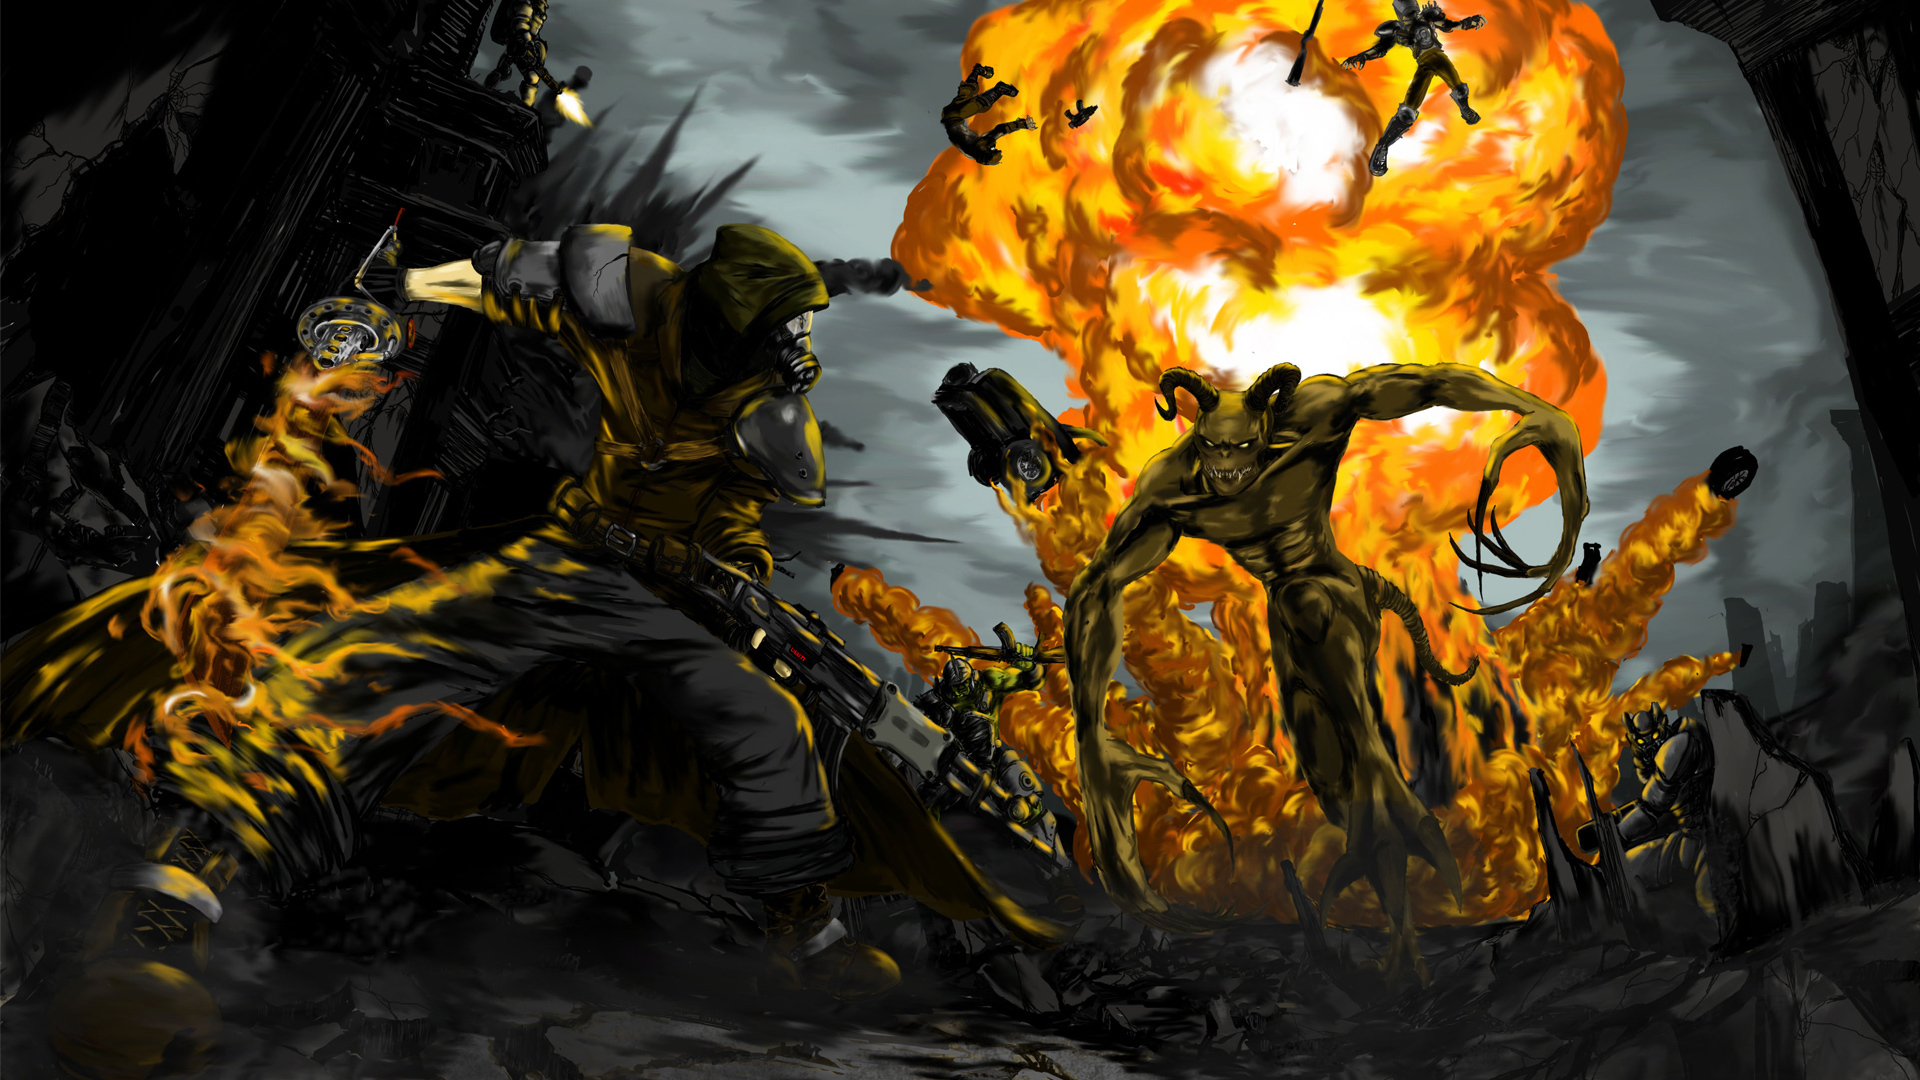 Fallout 3 full hd wallpaper and background image 1920x1080 id video game fallout 3 wallpaper altavistaventures Choice Image